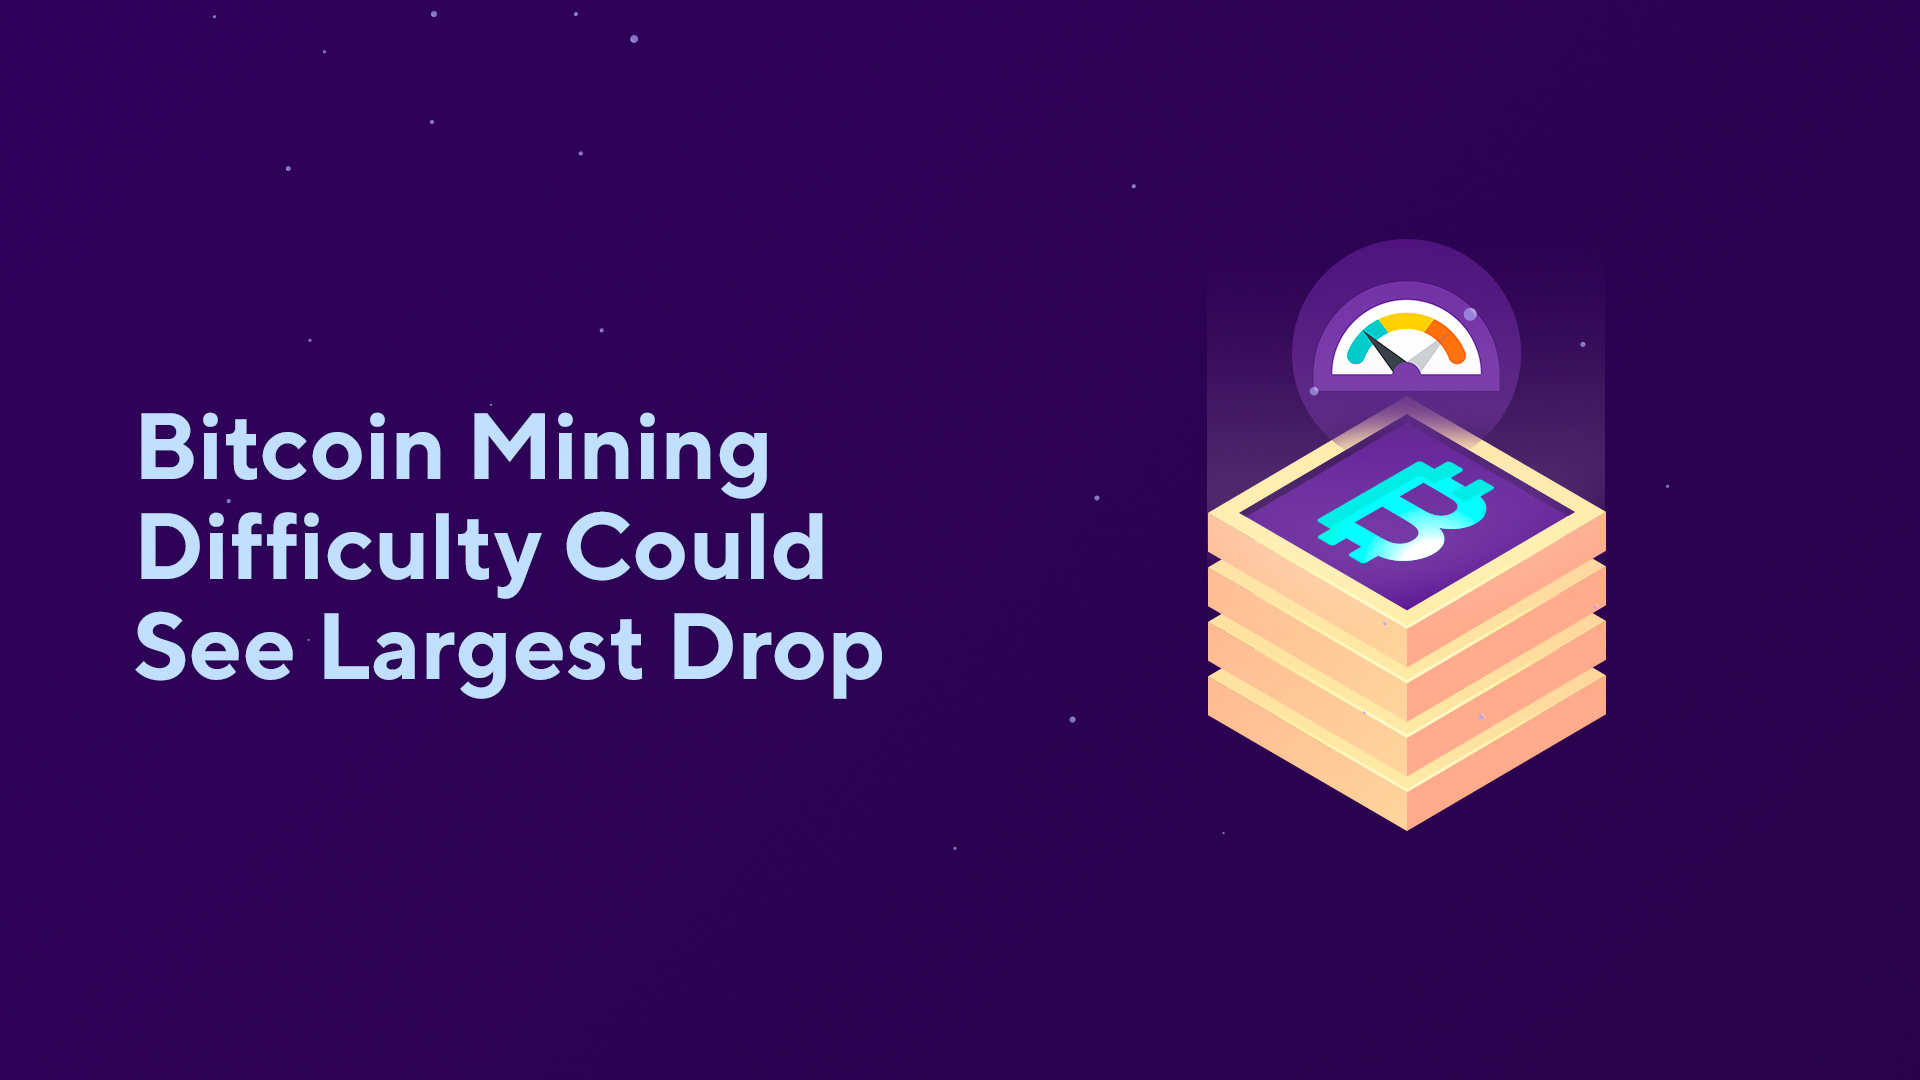 Bitcoin Mining Difficulty Could See Largest Drop